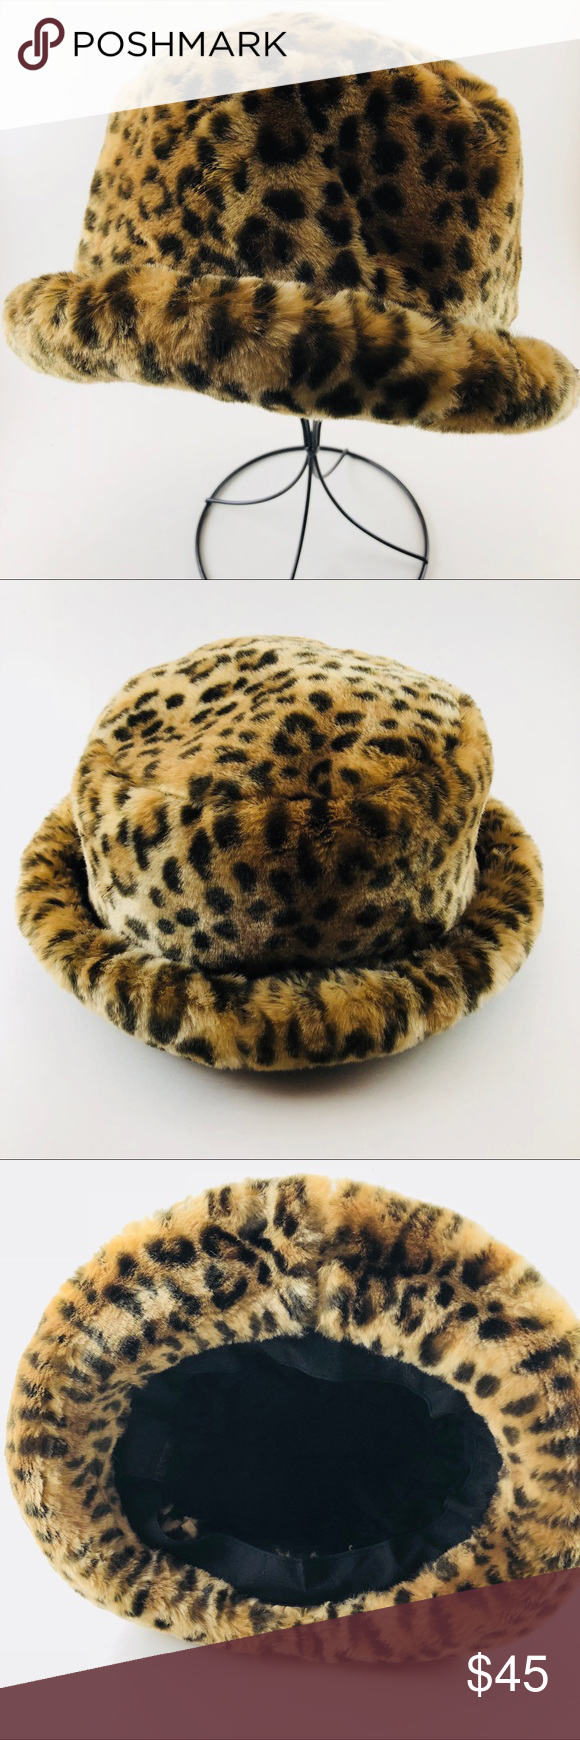 ⭐️🆕[DKNY] Leopard Faux Fur Hat 🎩 ️New most likely never